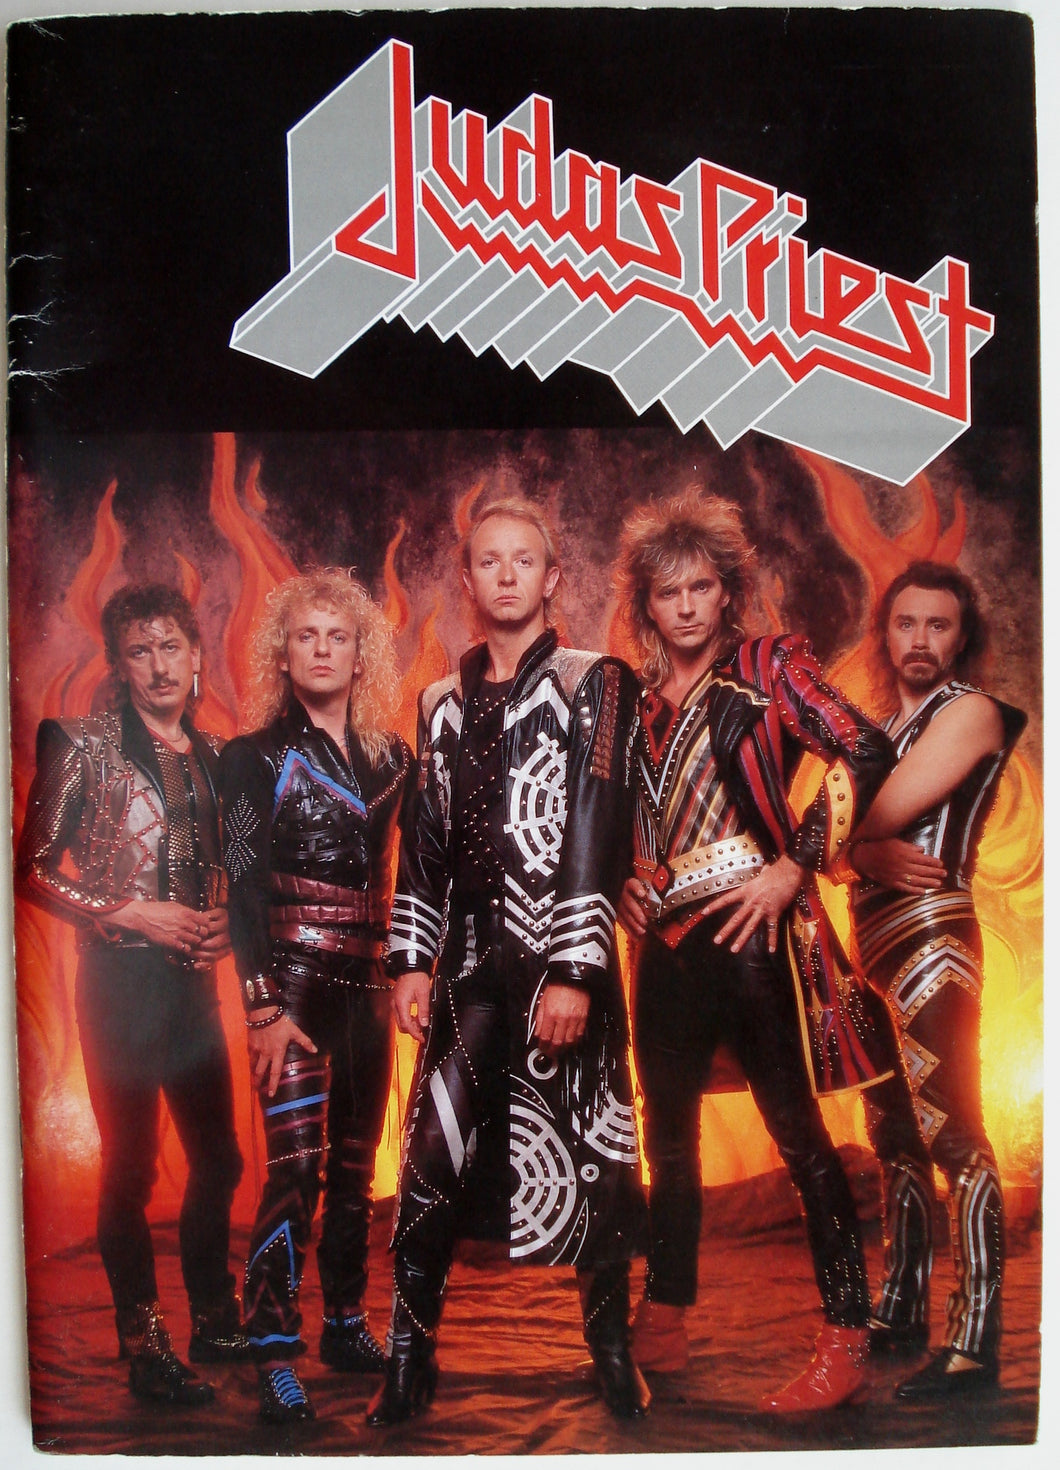 Judas Priest - 1986